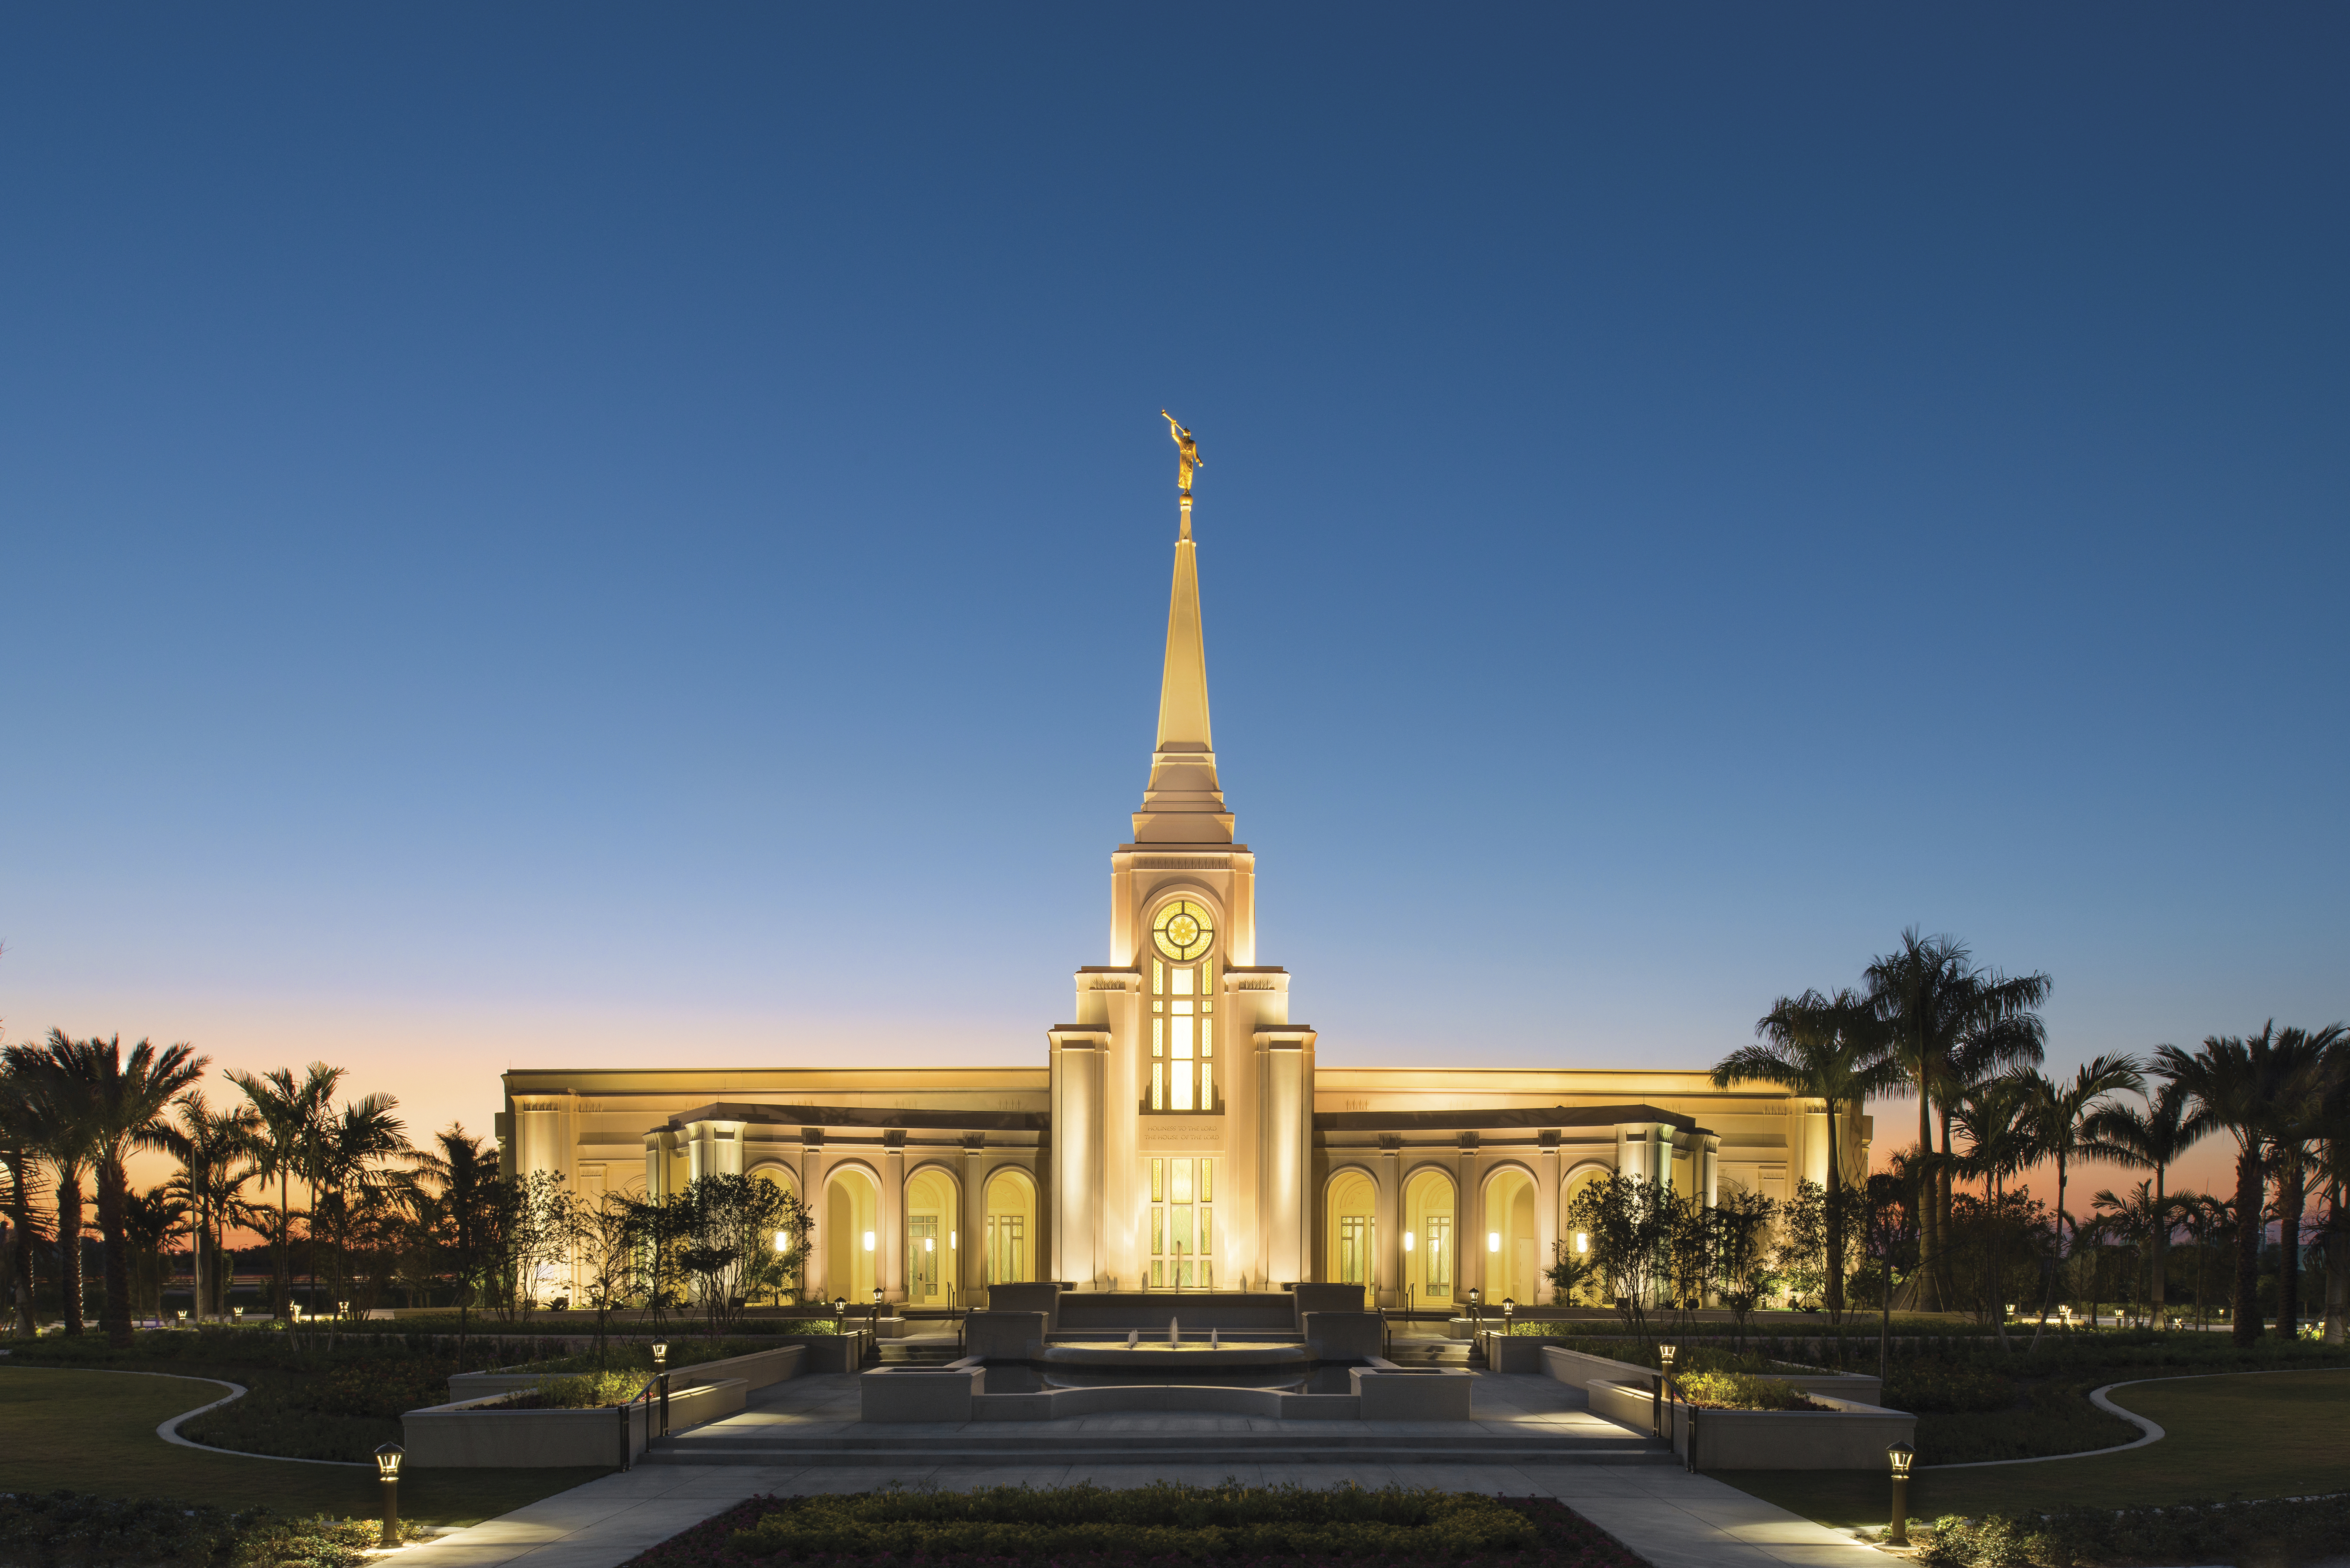 The Fort Lauderdale Florida Temple lit up at night.